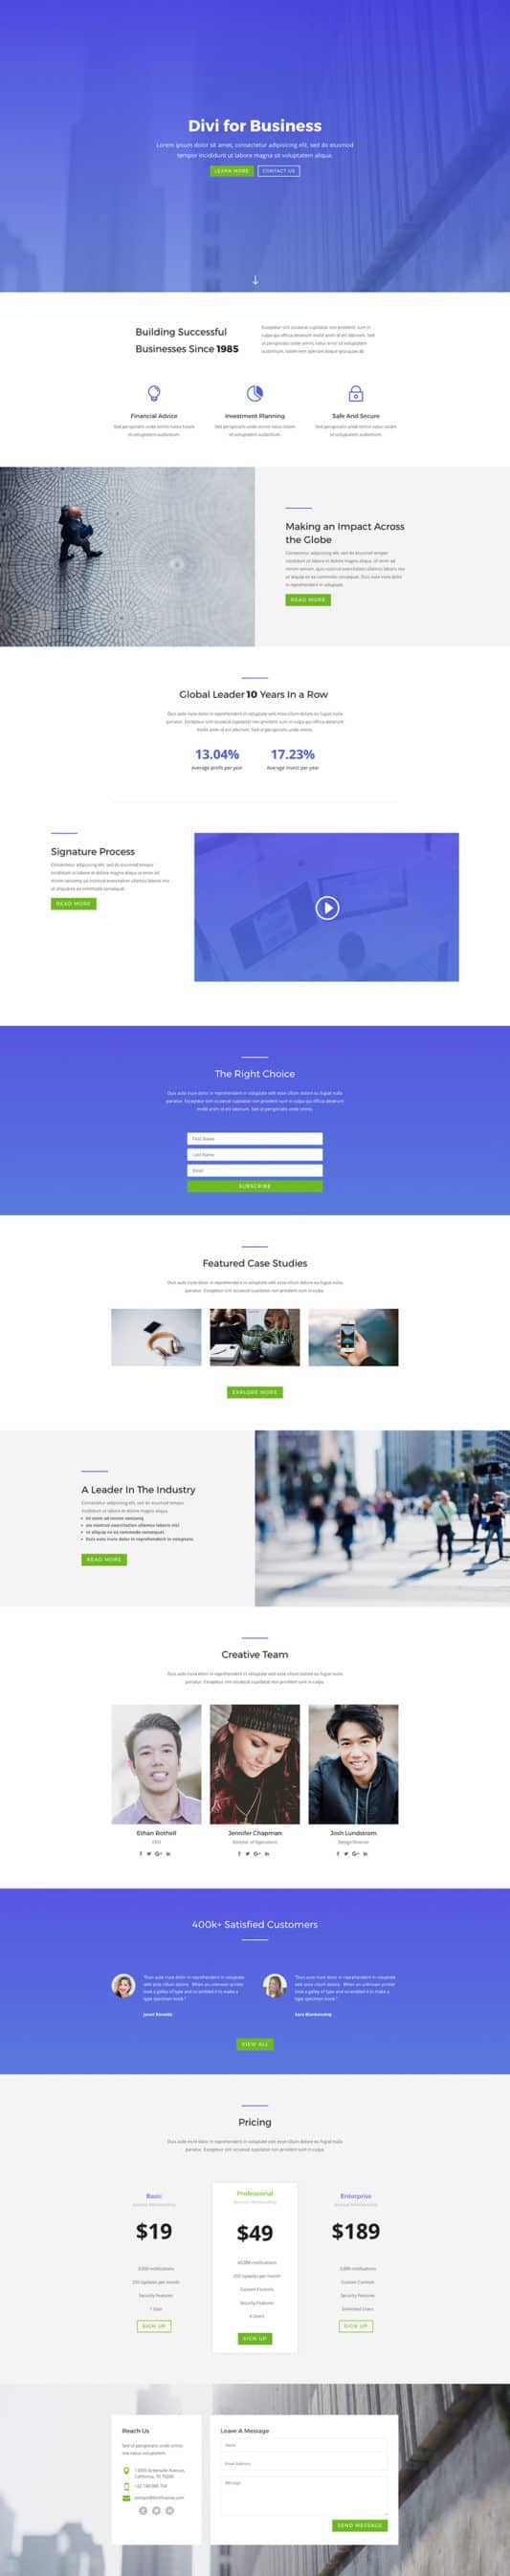 The Agency Page Style: Homepage Design 1